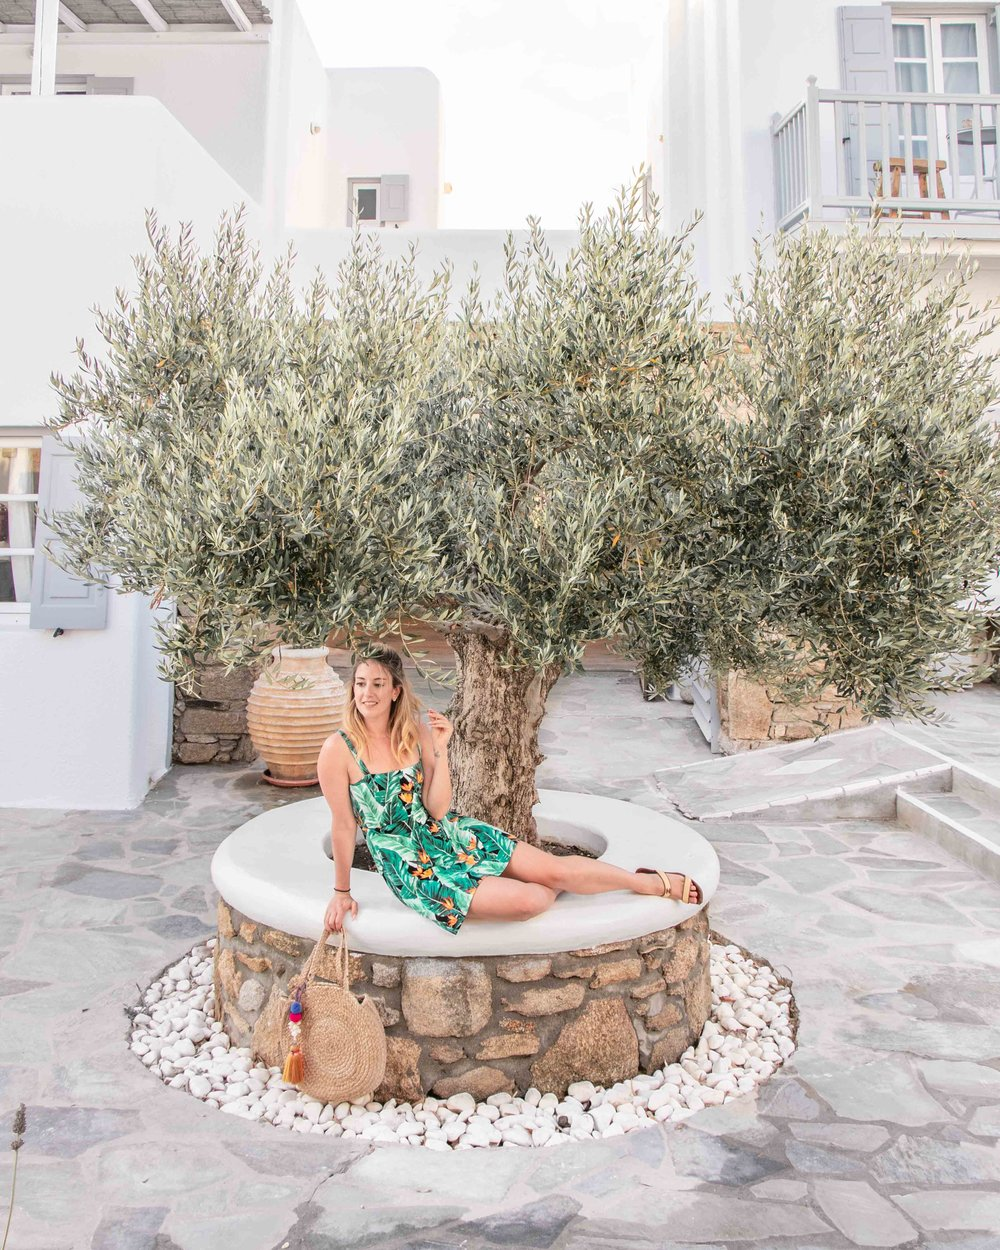 Olive tree at my hotel -  San Giorgio Mykonos